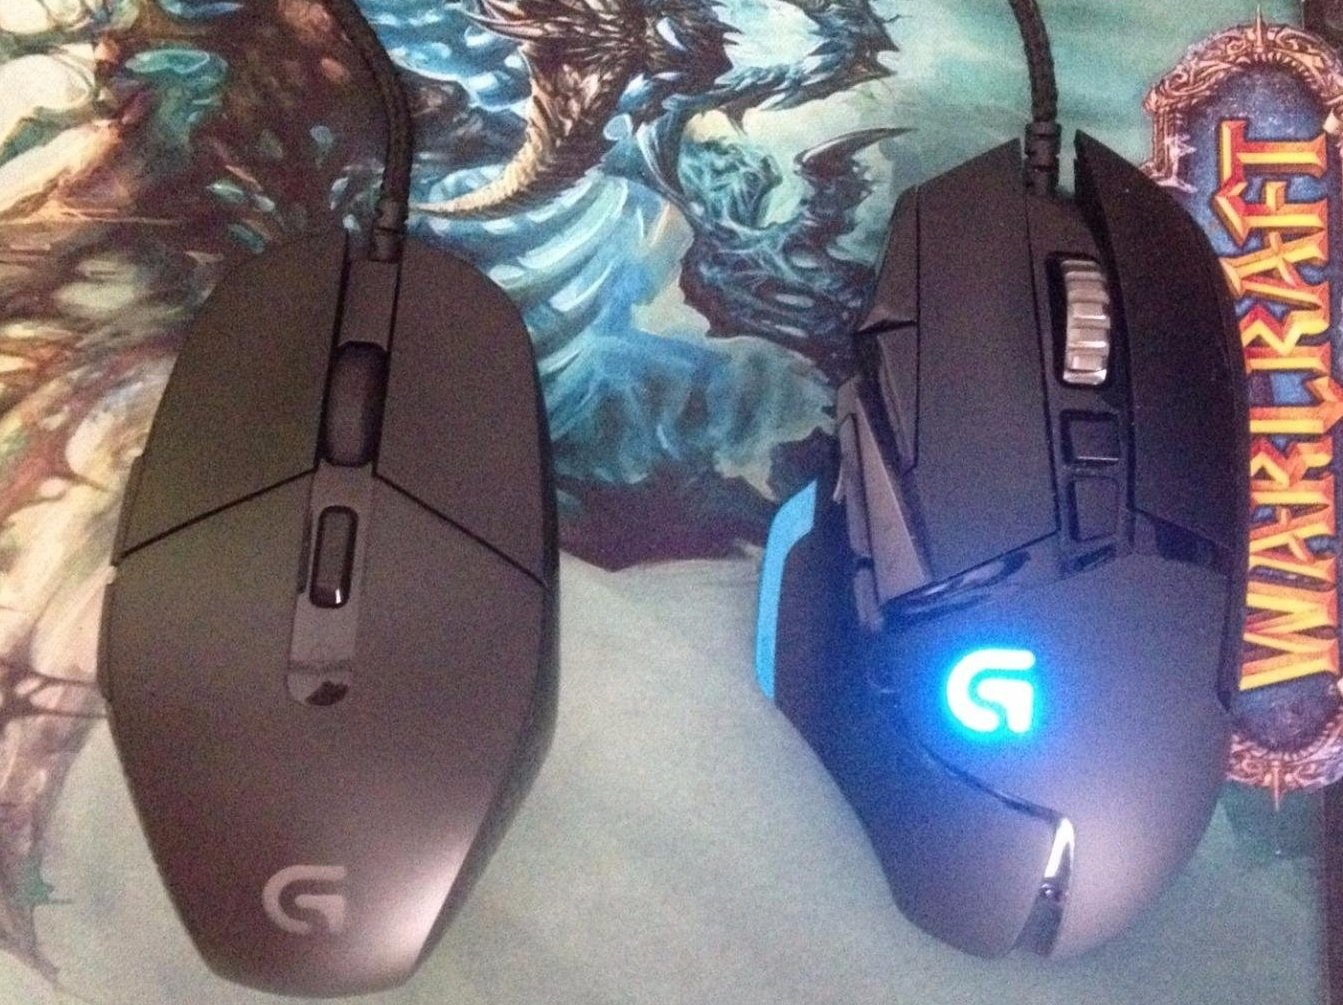 G303 vs G502 Gaming Mouse